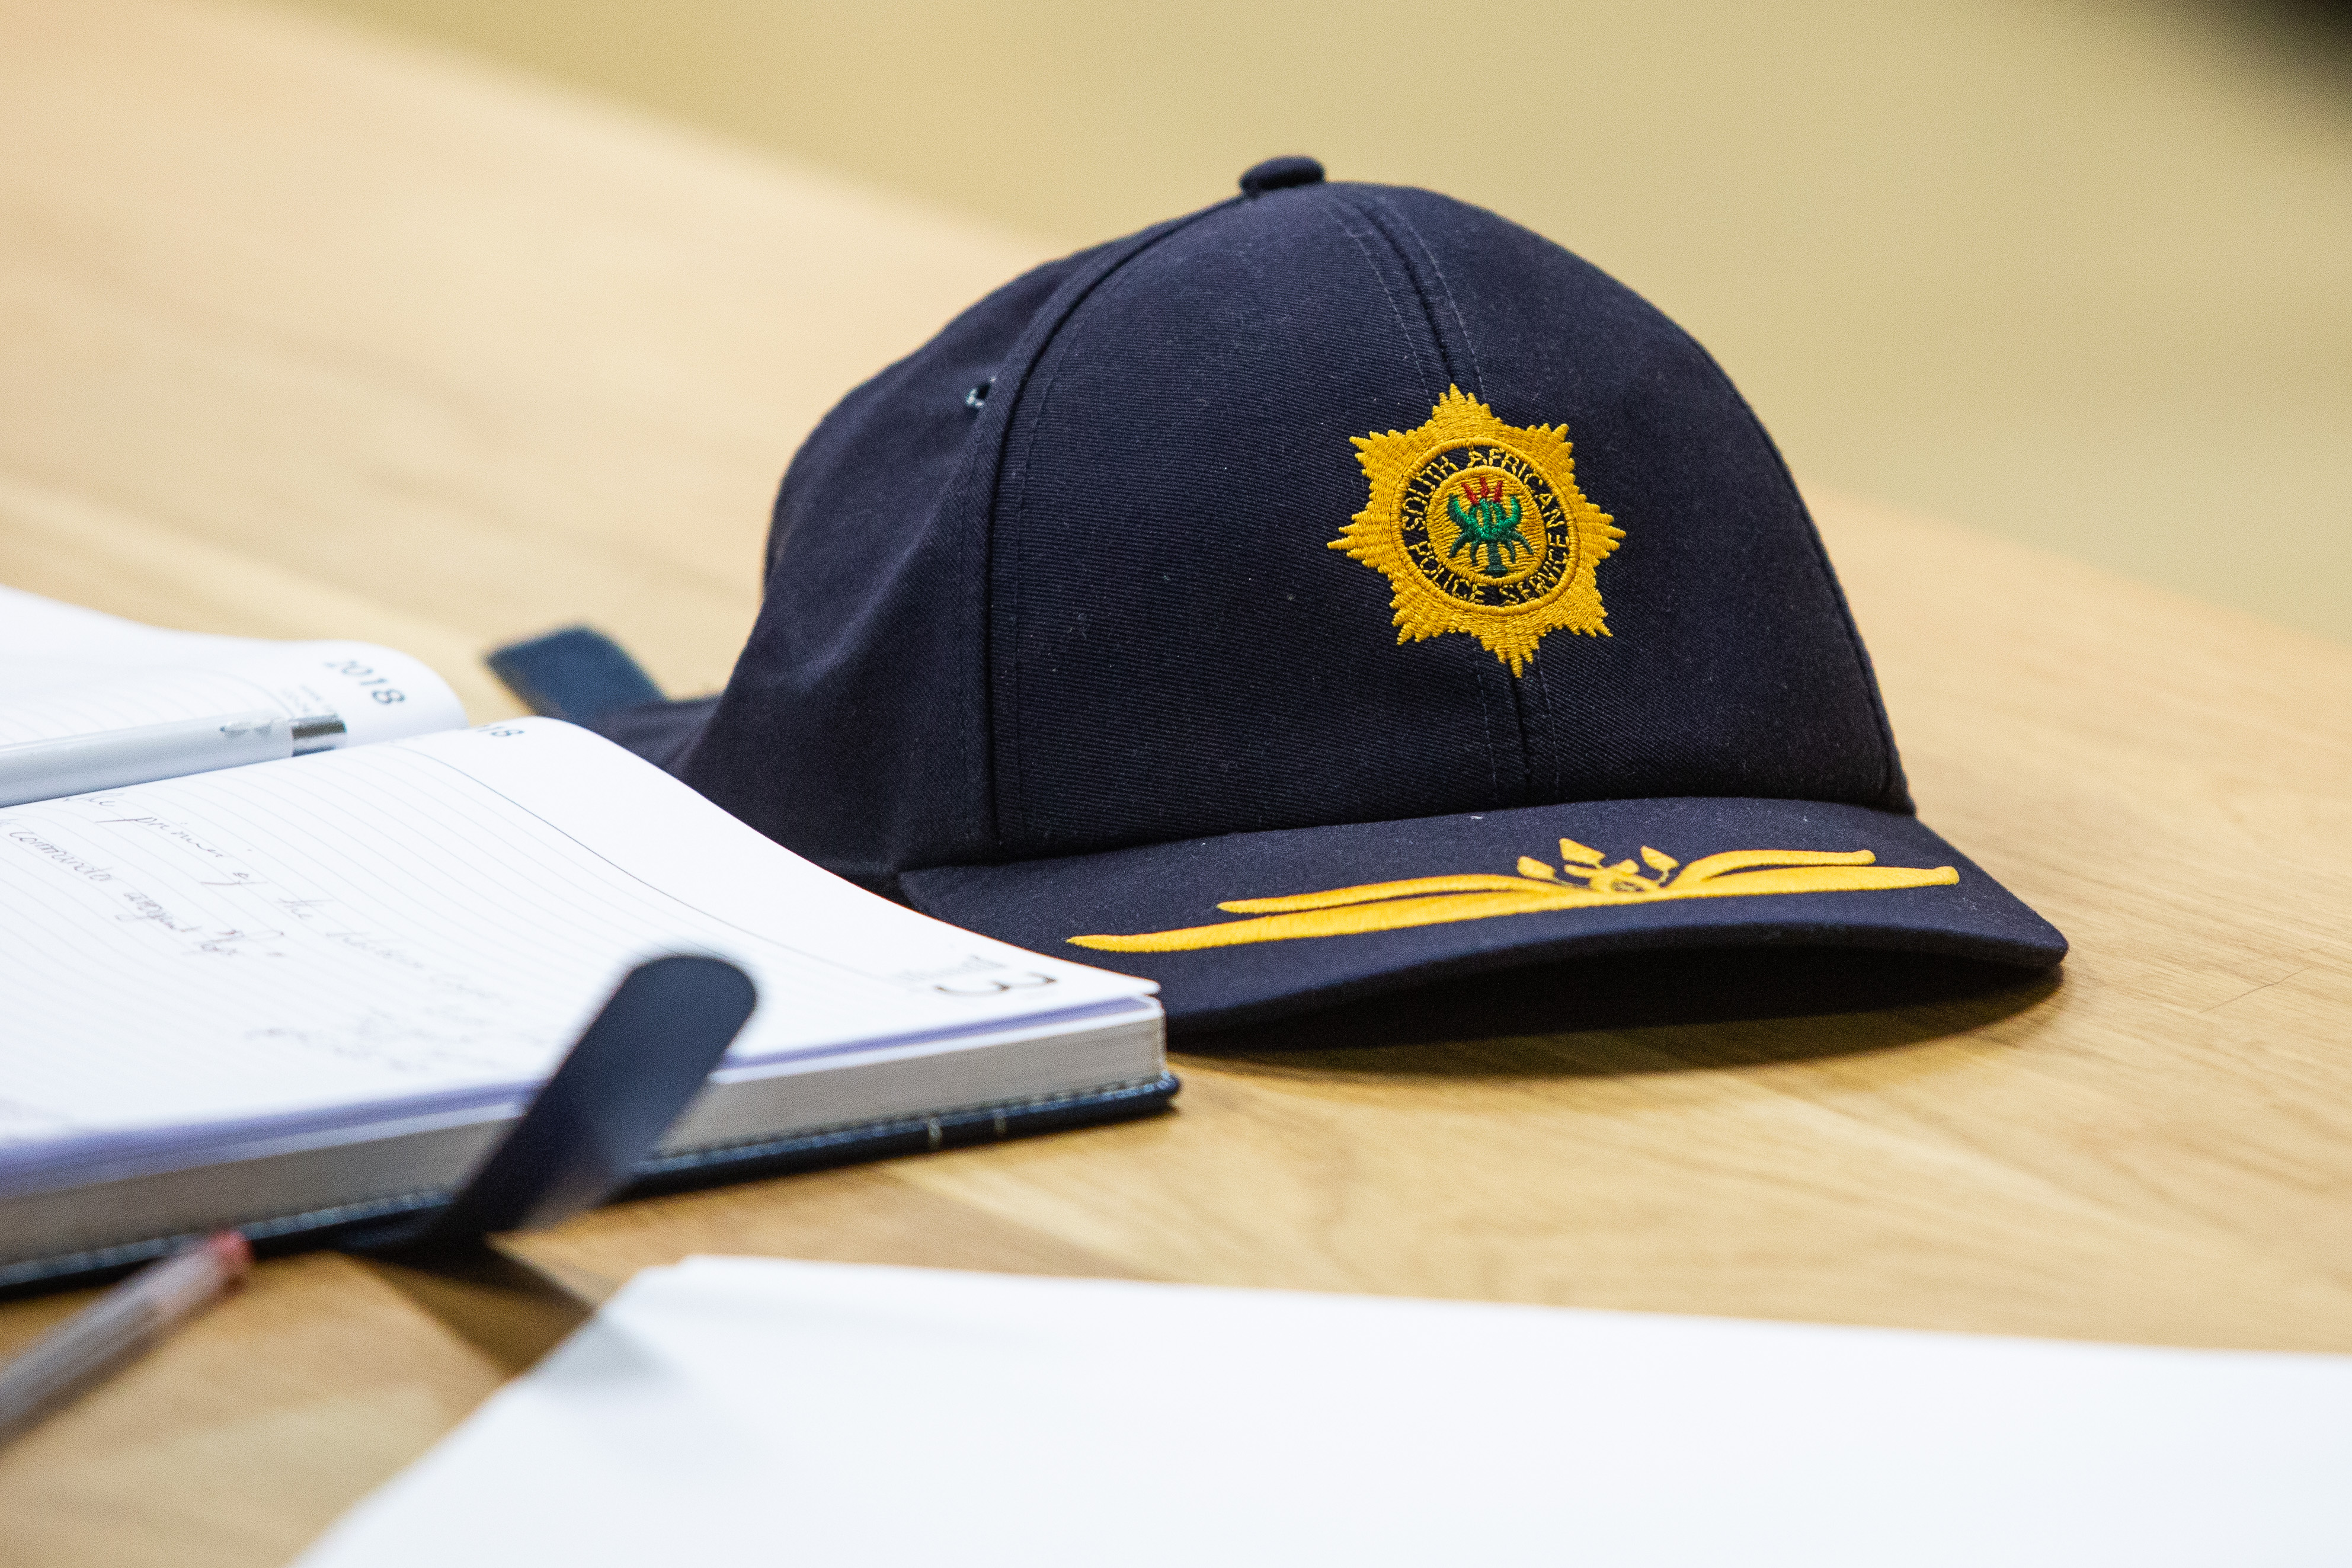 Photo of saps cap.